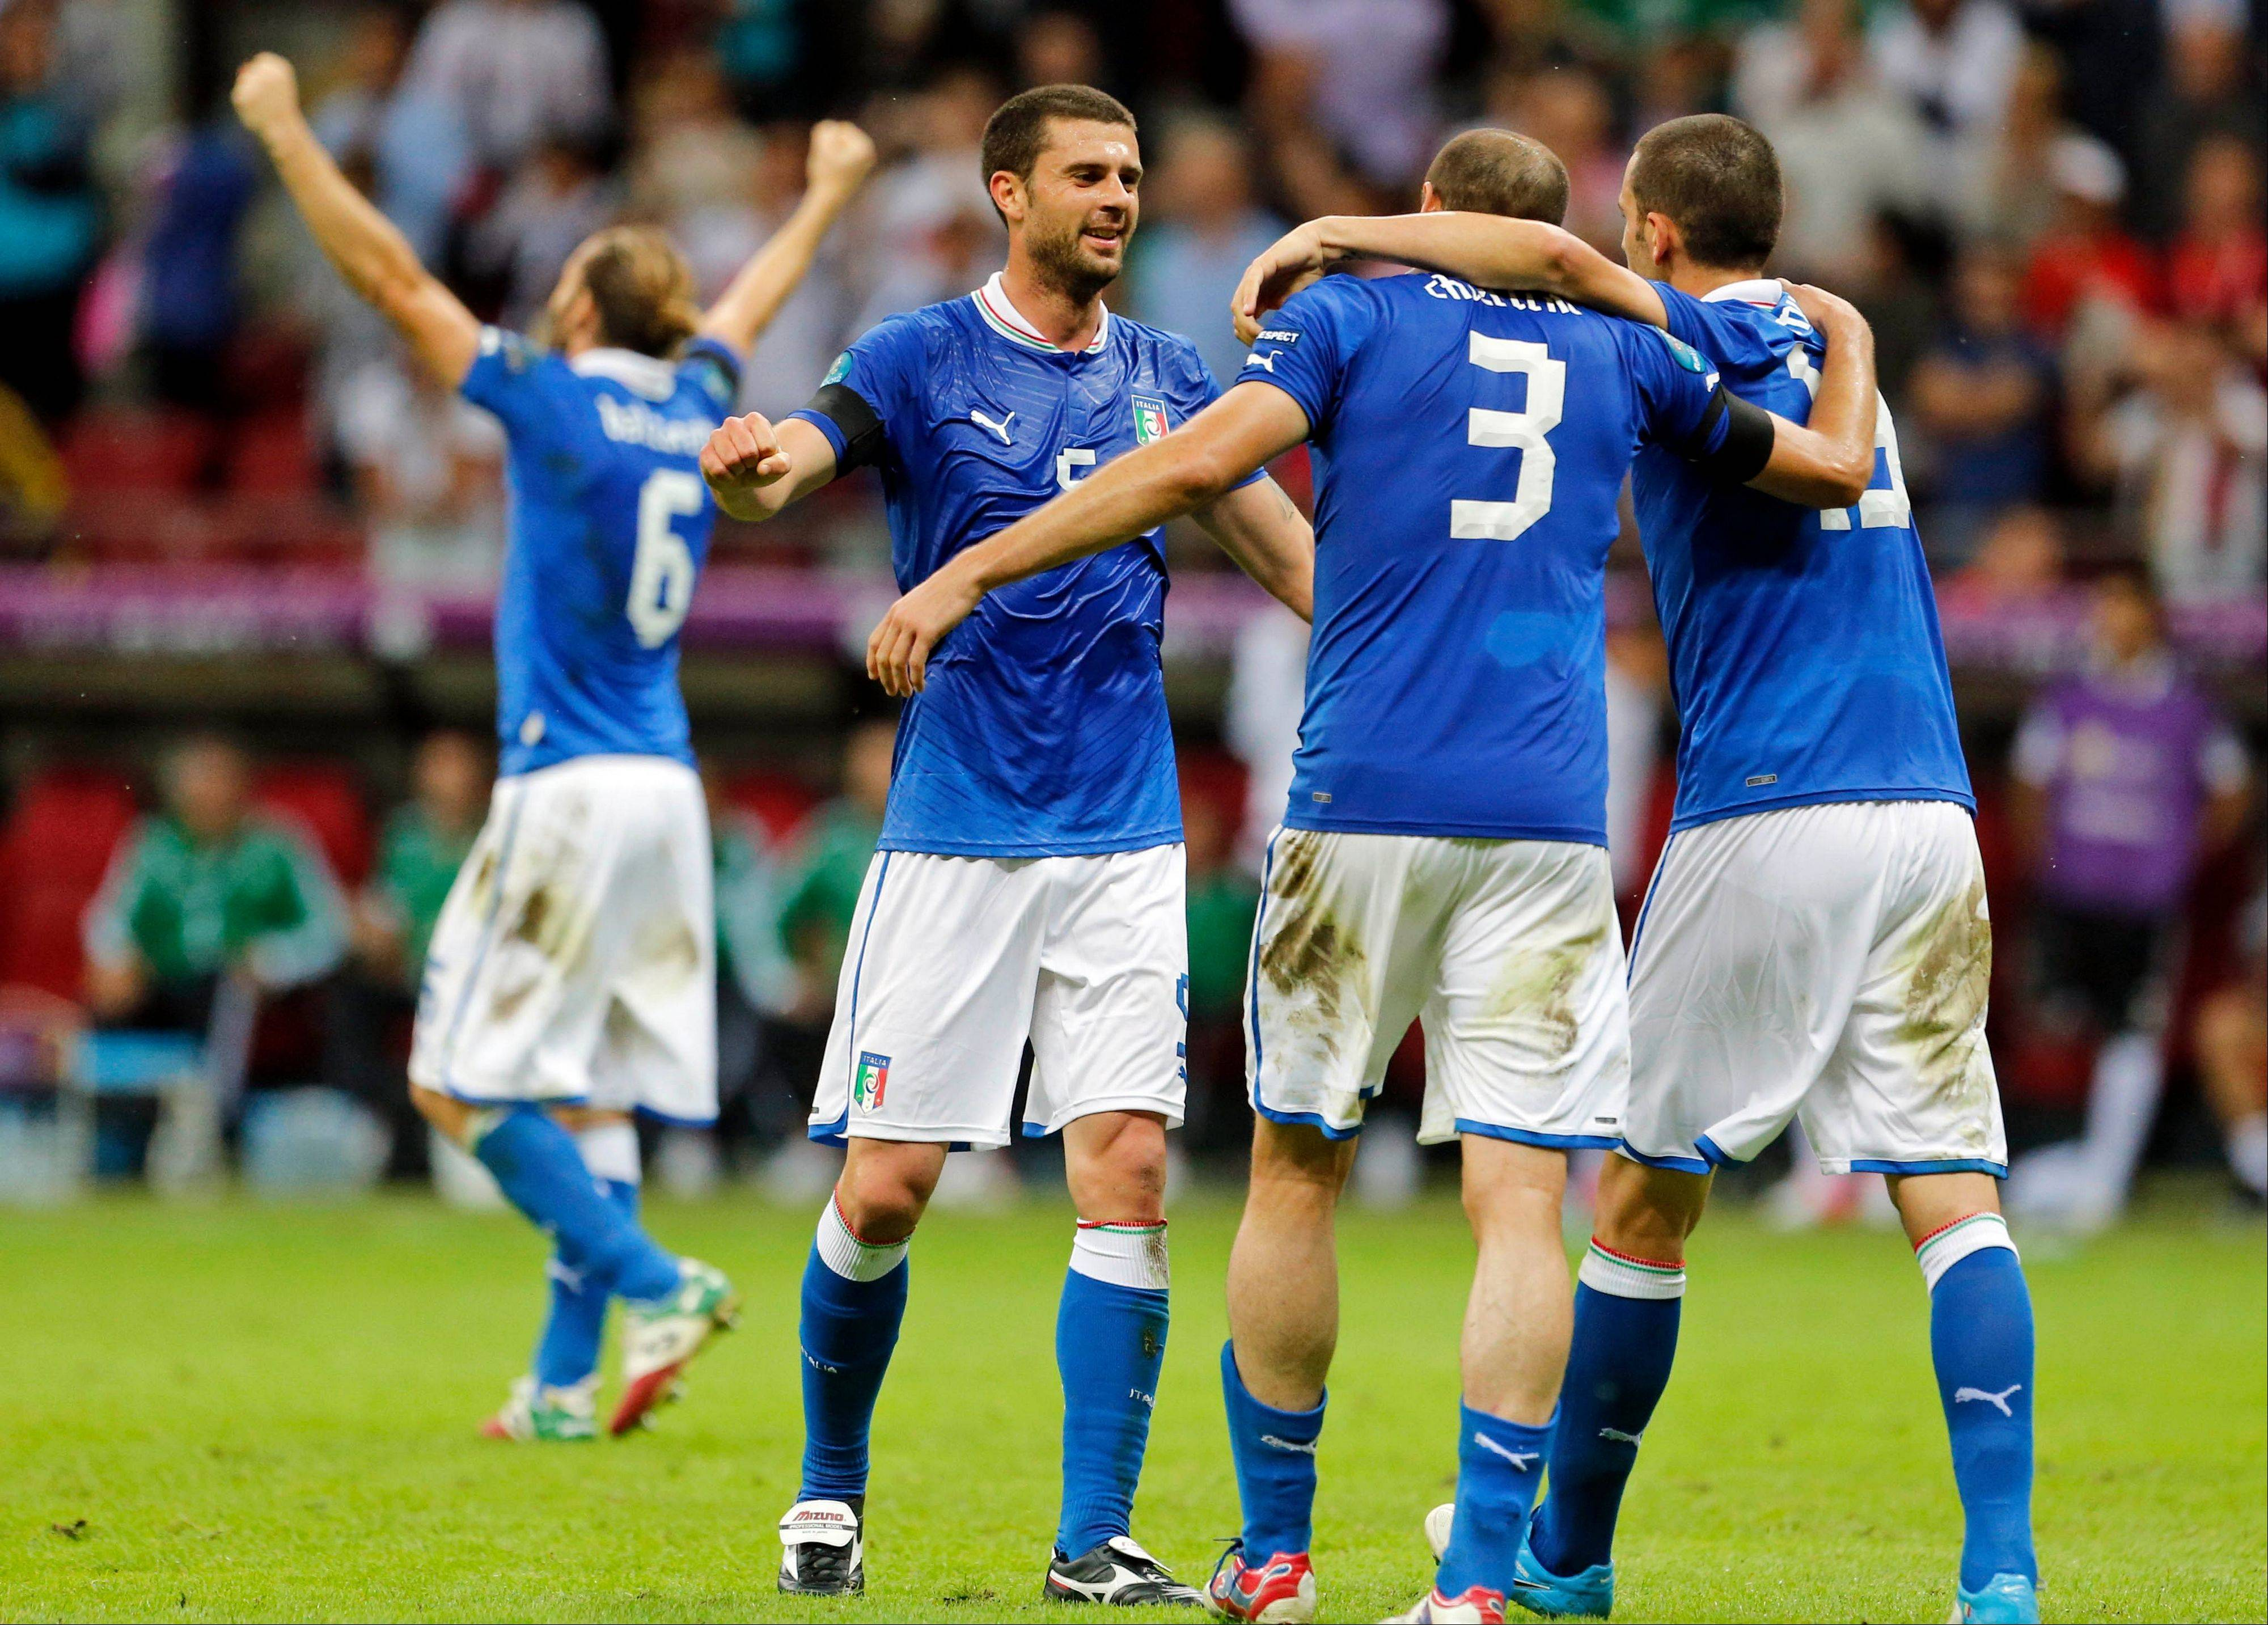 Italian players celebrate Thursday after beating Germany 2-1 in Euro 2012 semifinals in Warsaw, Poland.